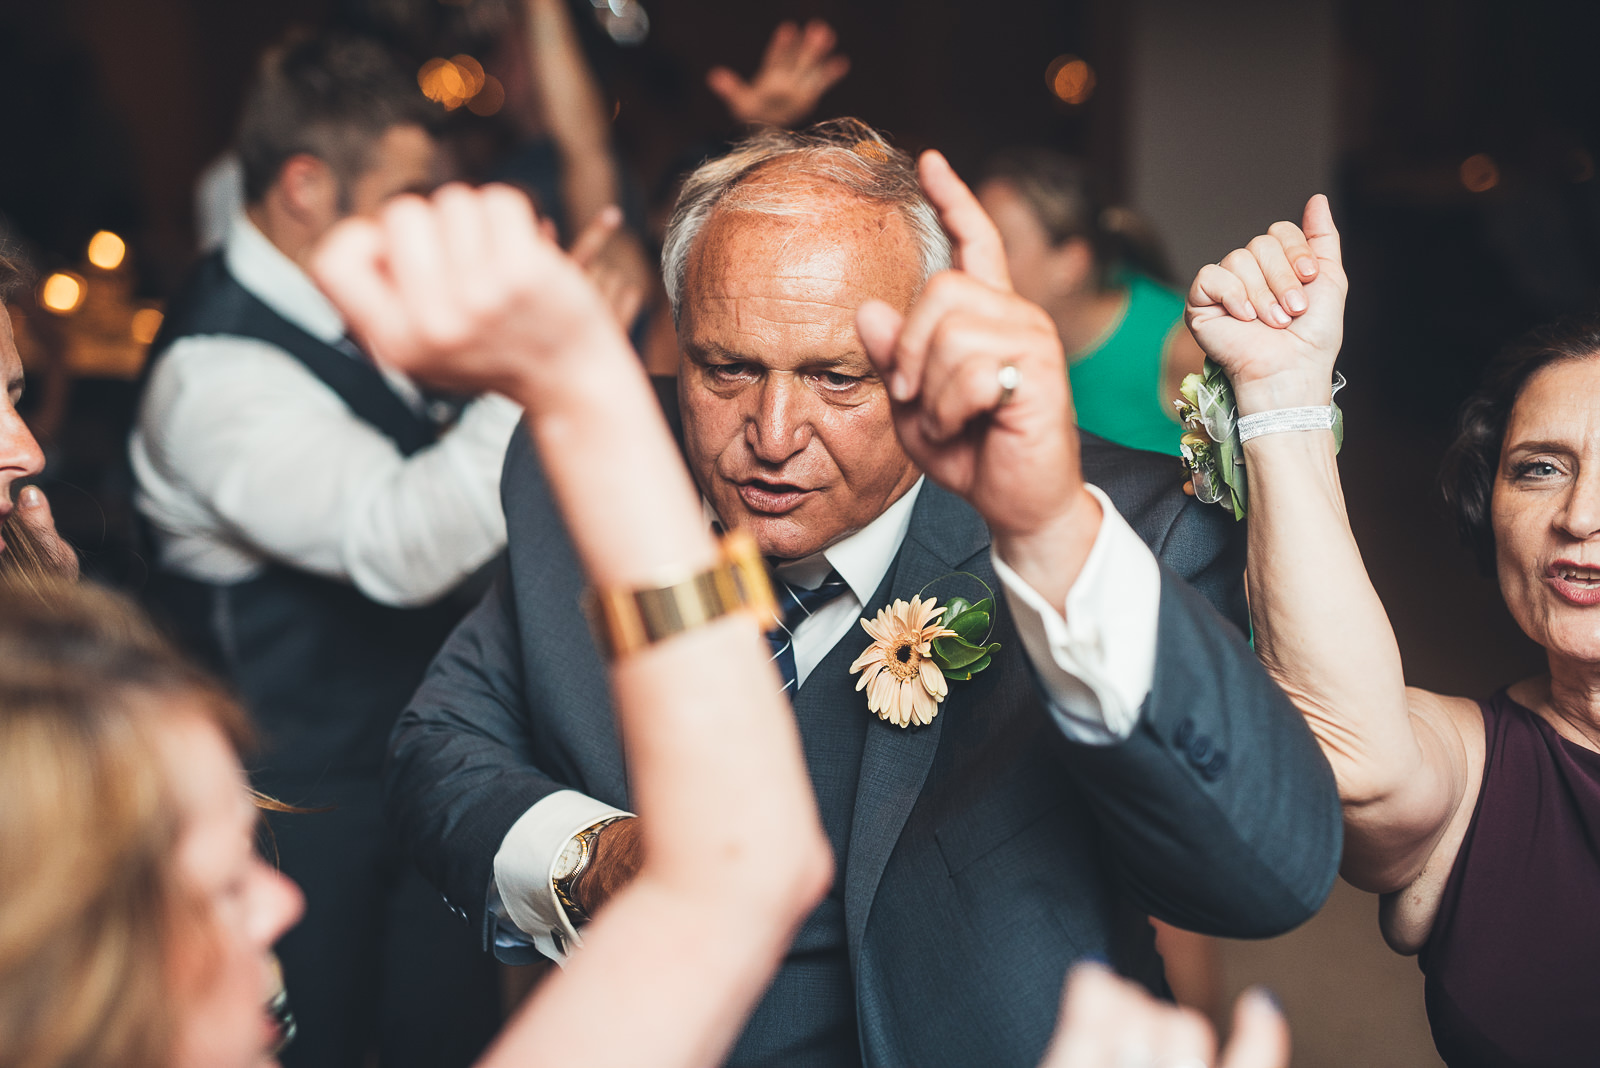 62 dancing at wedding